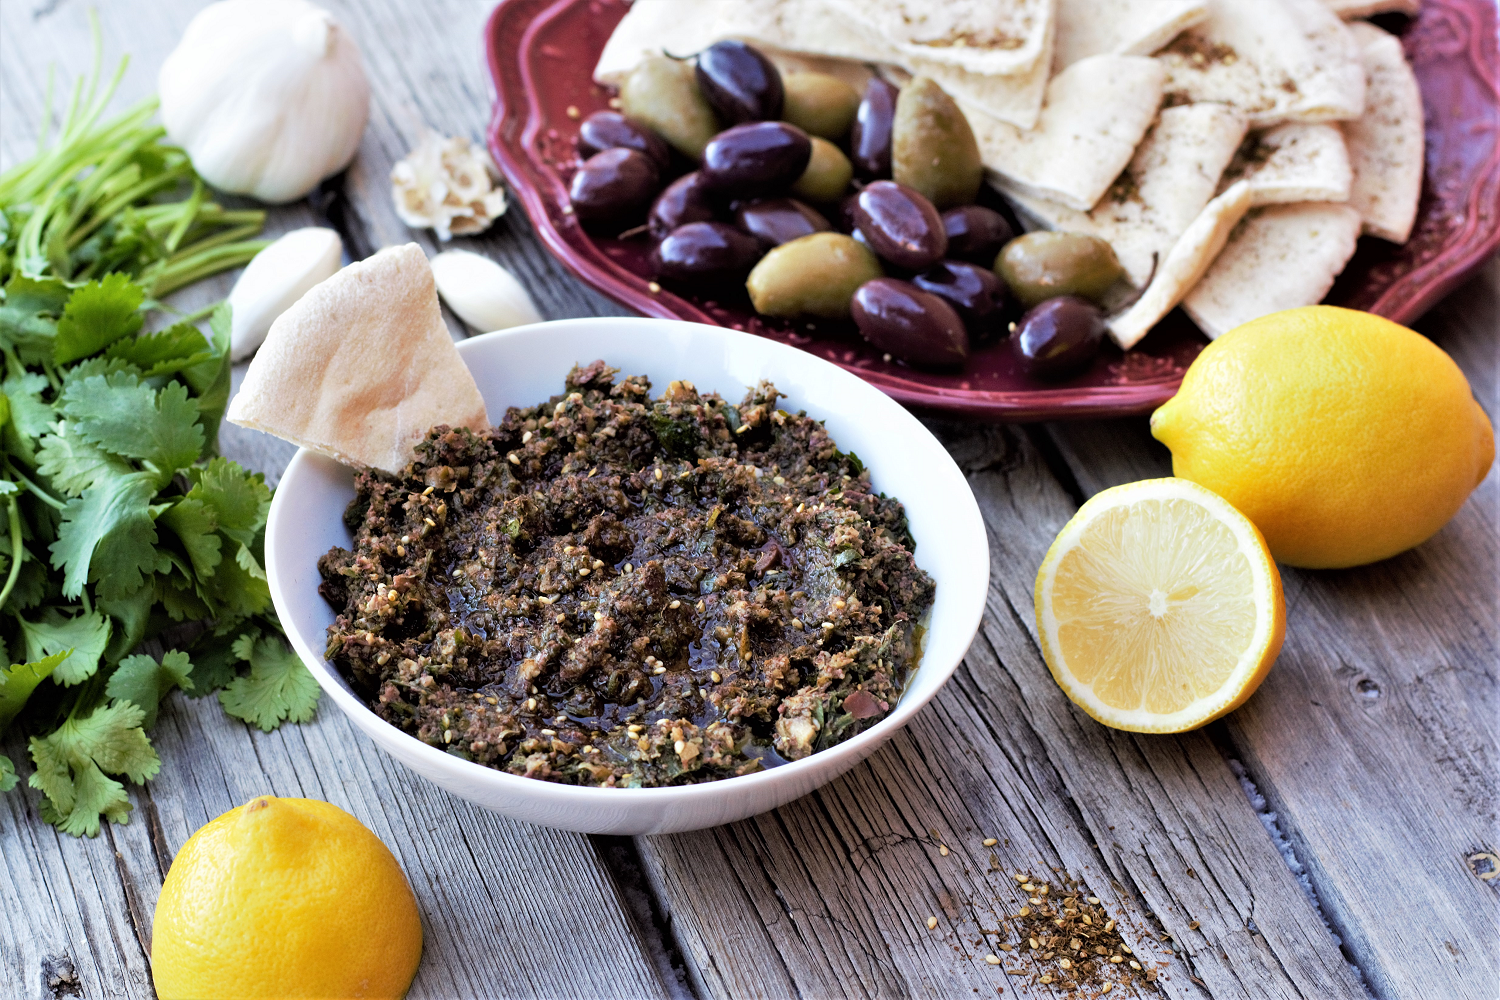 Wildly popular across the Middle East & eastern Mediterranean, za'atar spice blend is packed with woodsy, nutty, tangy flavor for the perfect complement to salty olives and bright lemon juice.